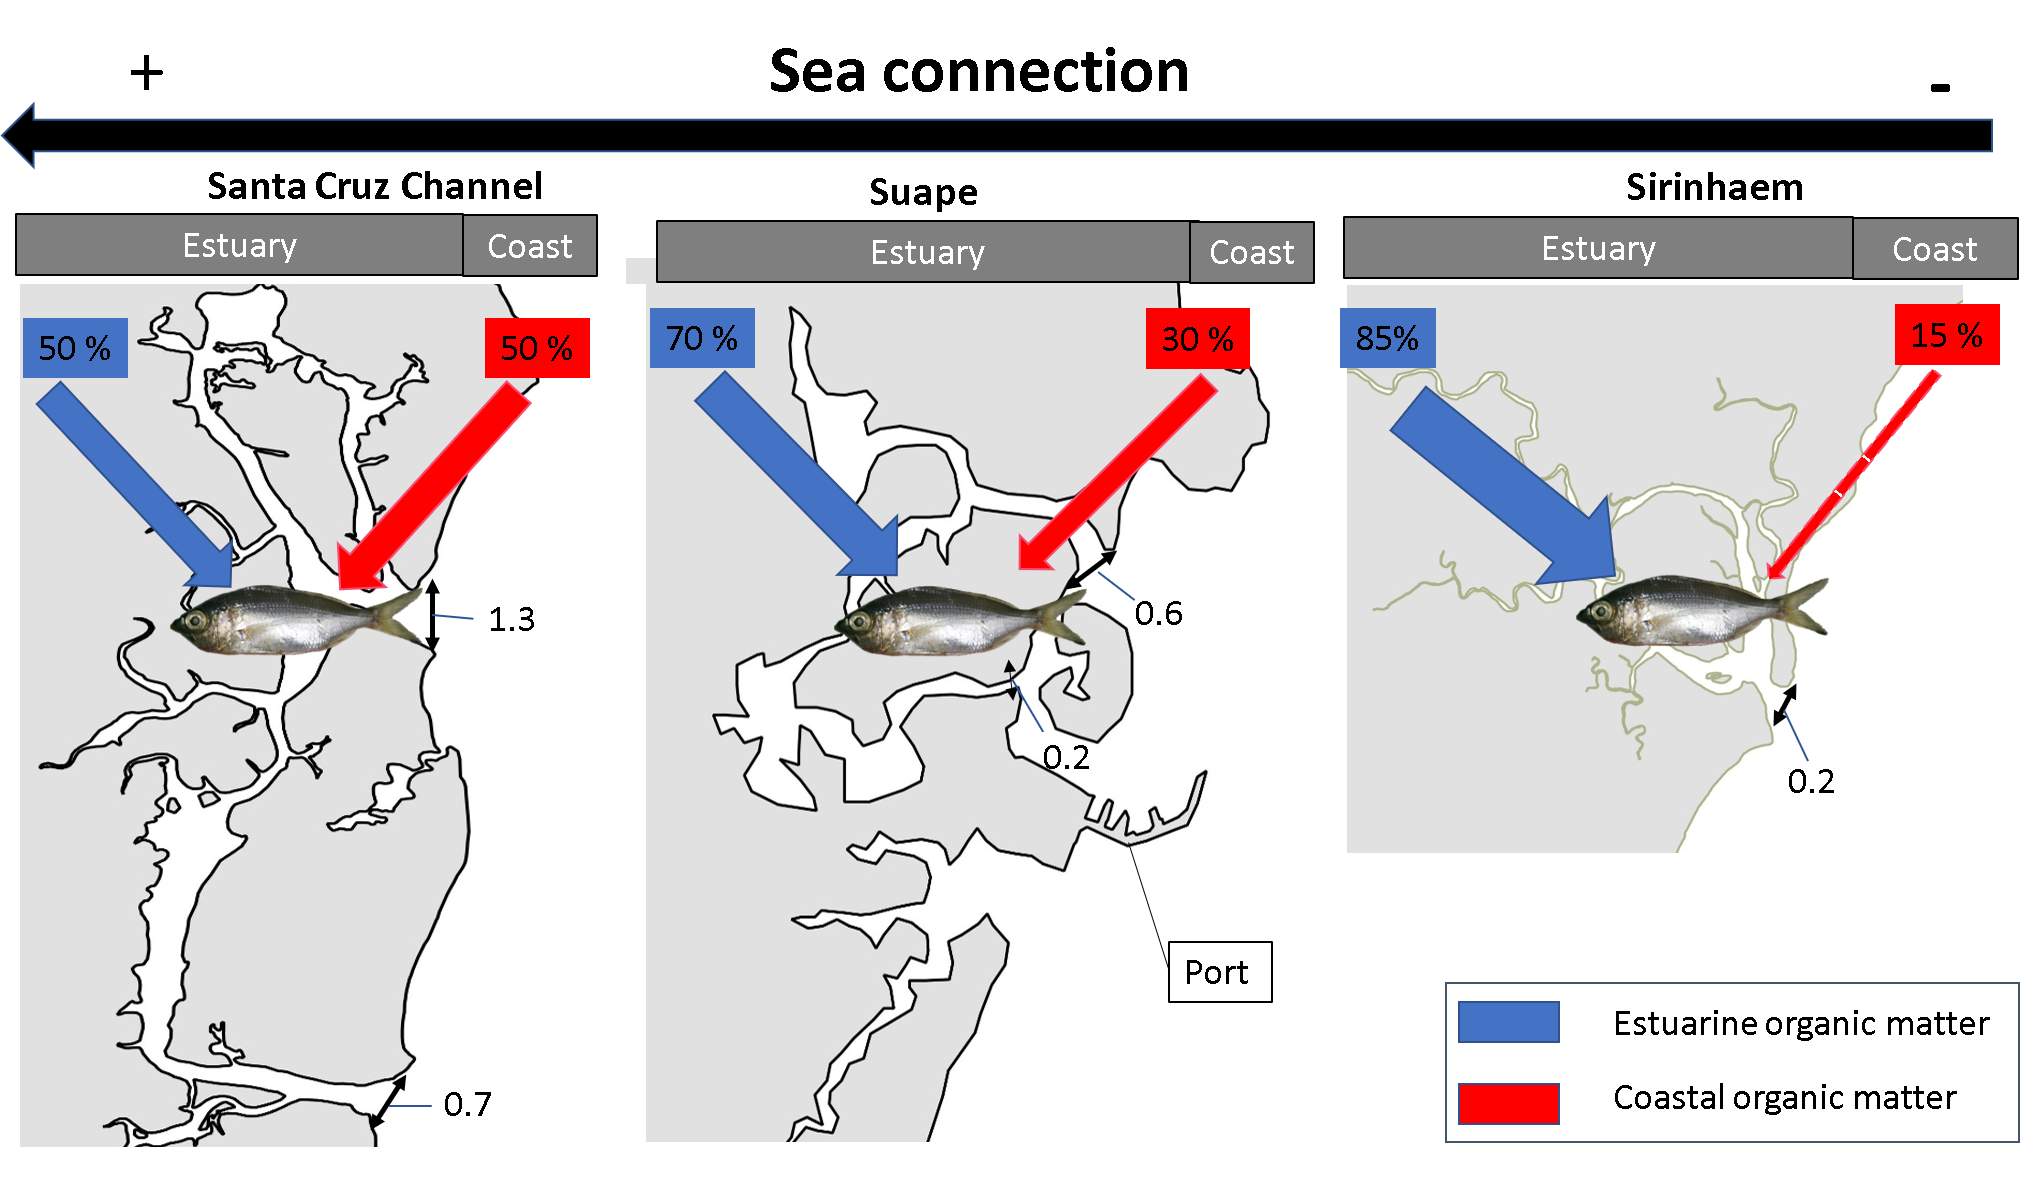 Importance of estuary morphology for ecological connectivity with their adjacent coast: A case study in Brazilian tropical estuaries